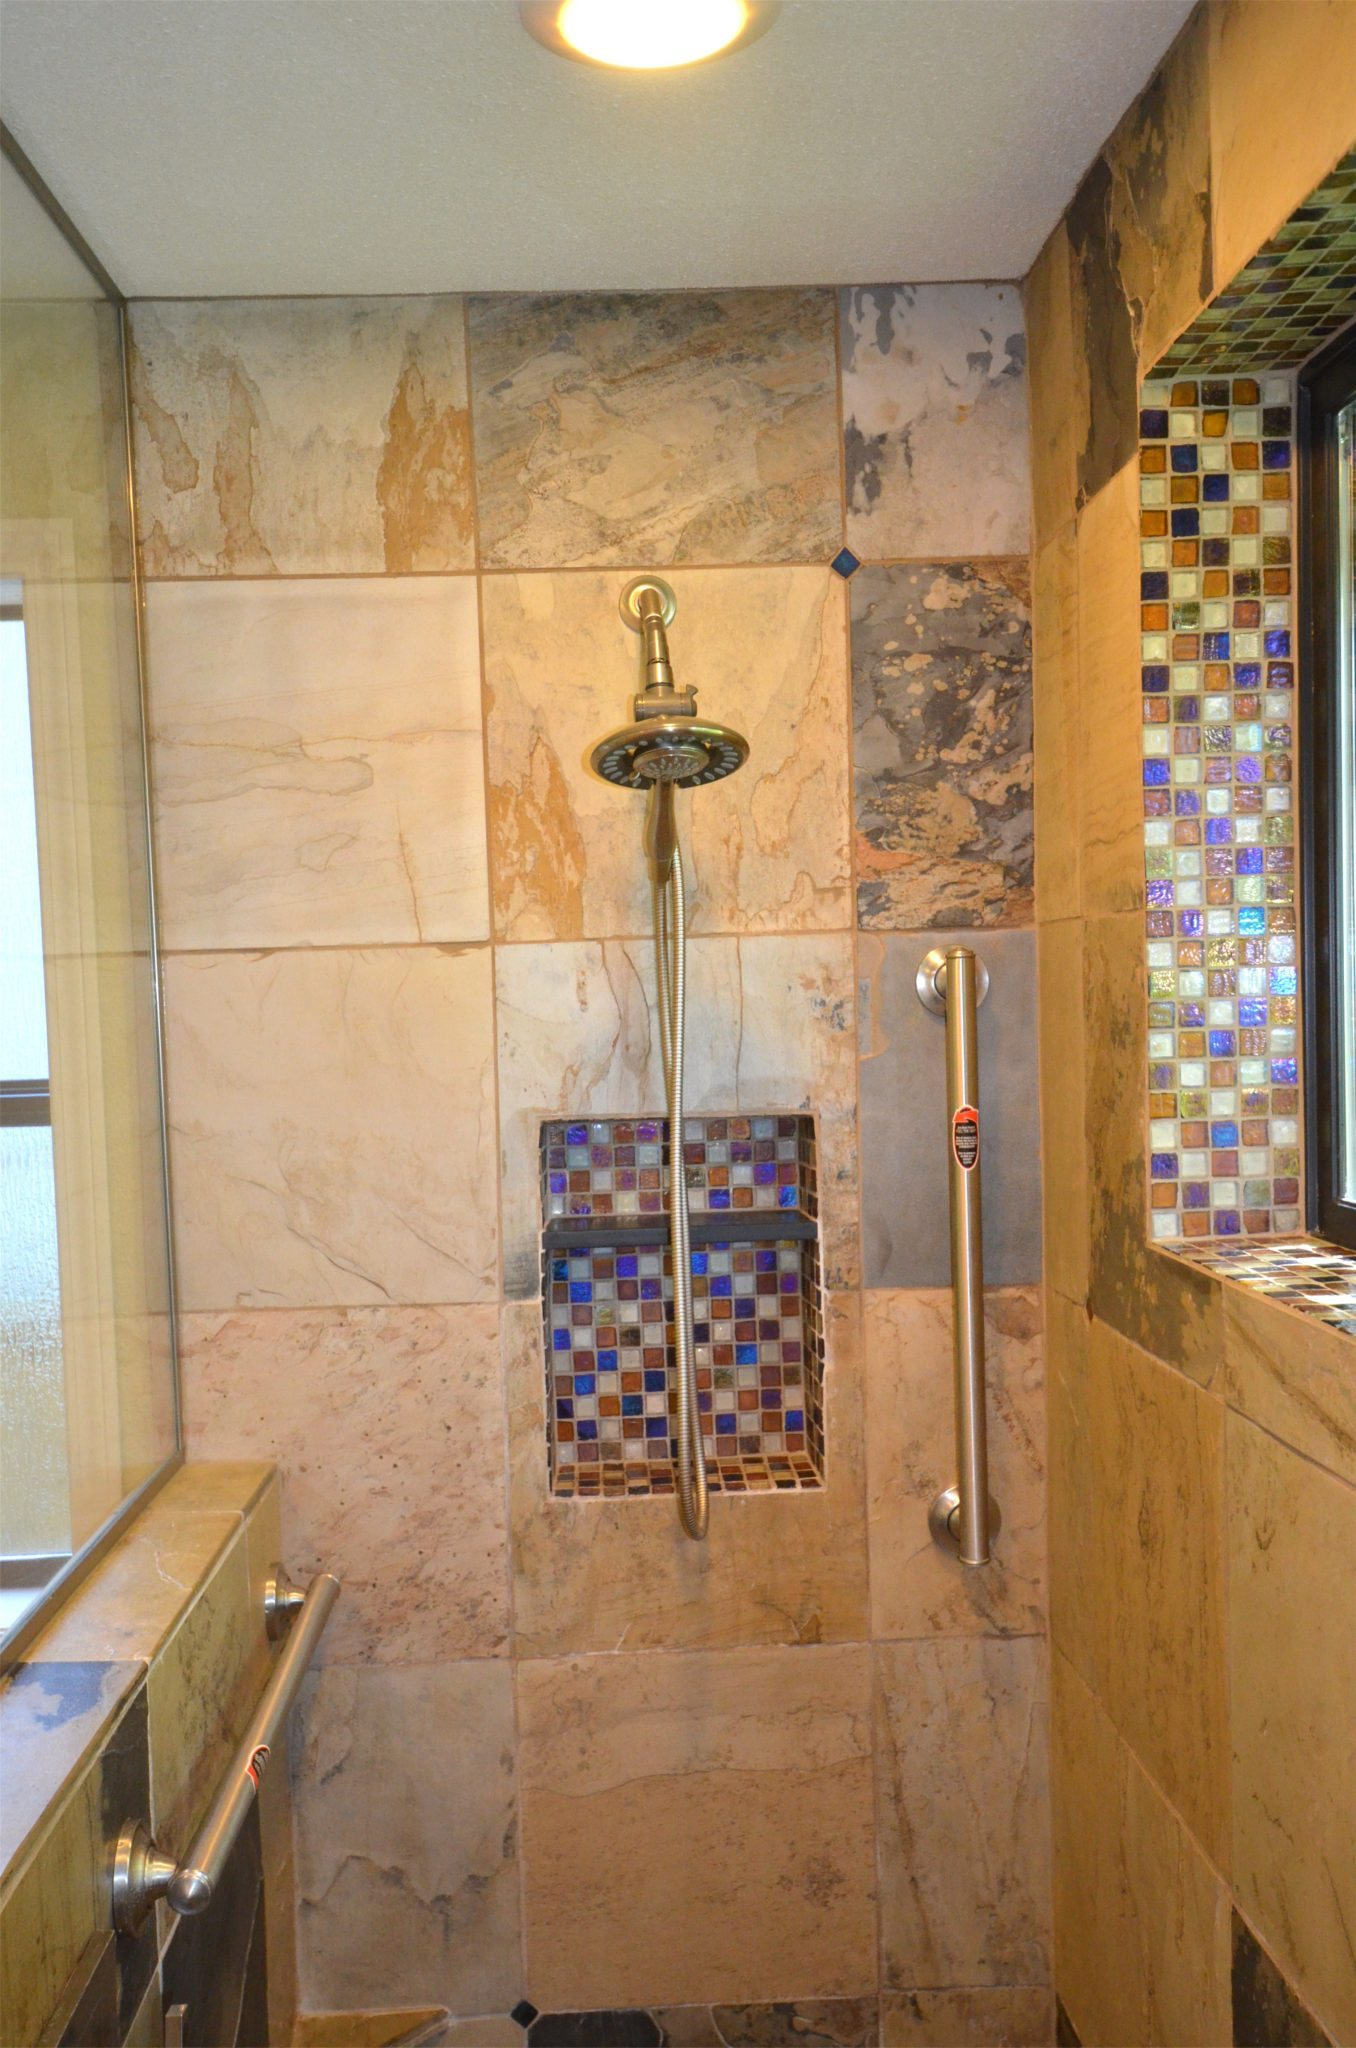 Walk In Tile Shower Dale 39 S Remodeling Salem Oregon Dale 39 S Remodeling Salem Oregon